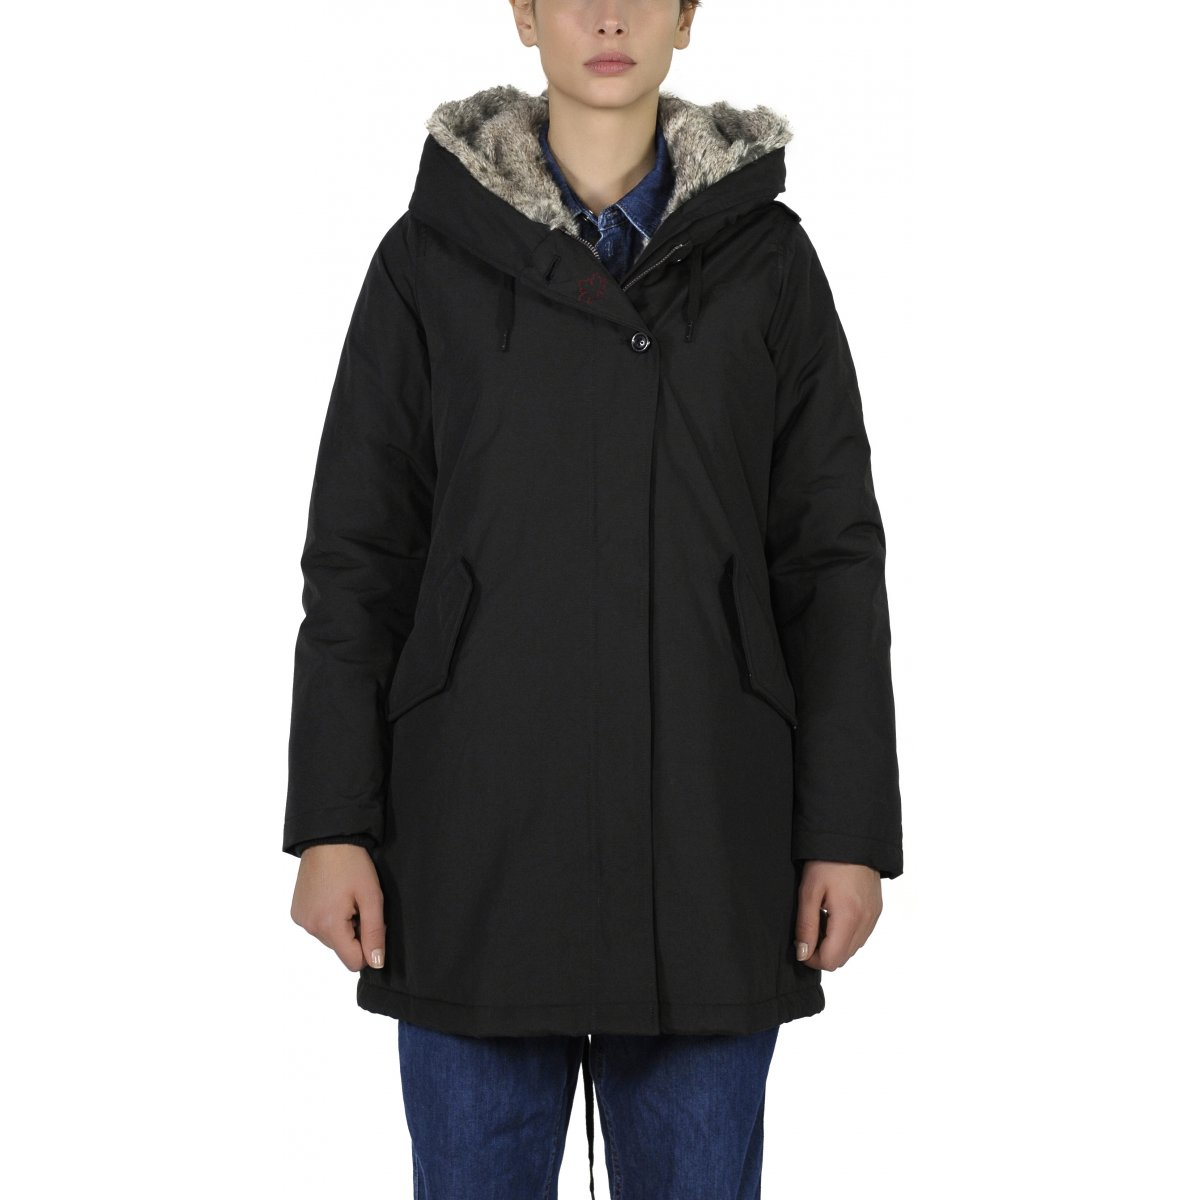 lowest price 15ad7 6a5de Giacca Donna Lanigan New - Eskimo & Parka Canadian Women